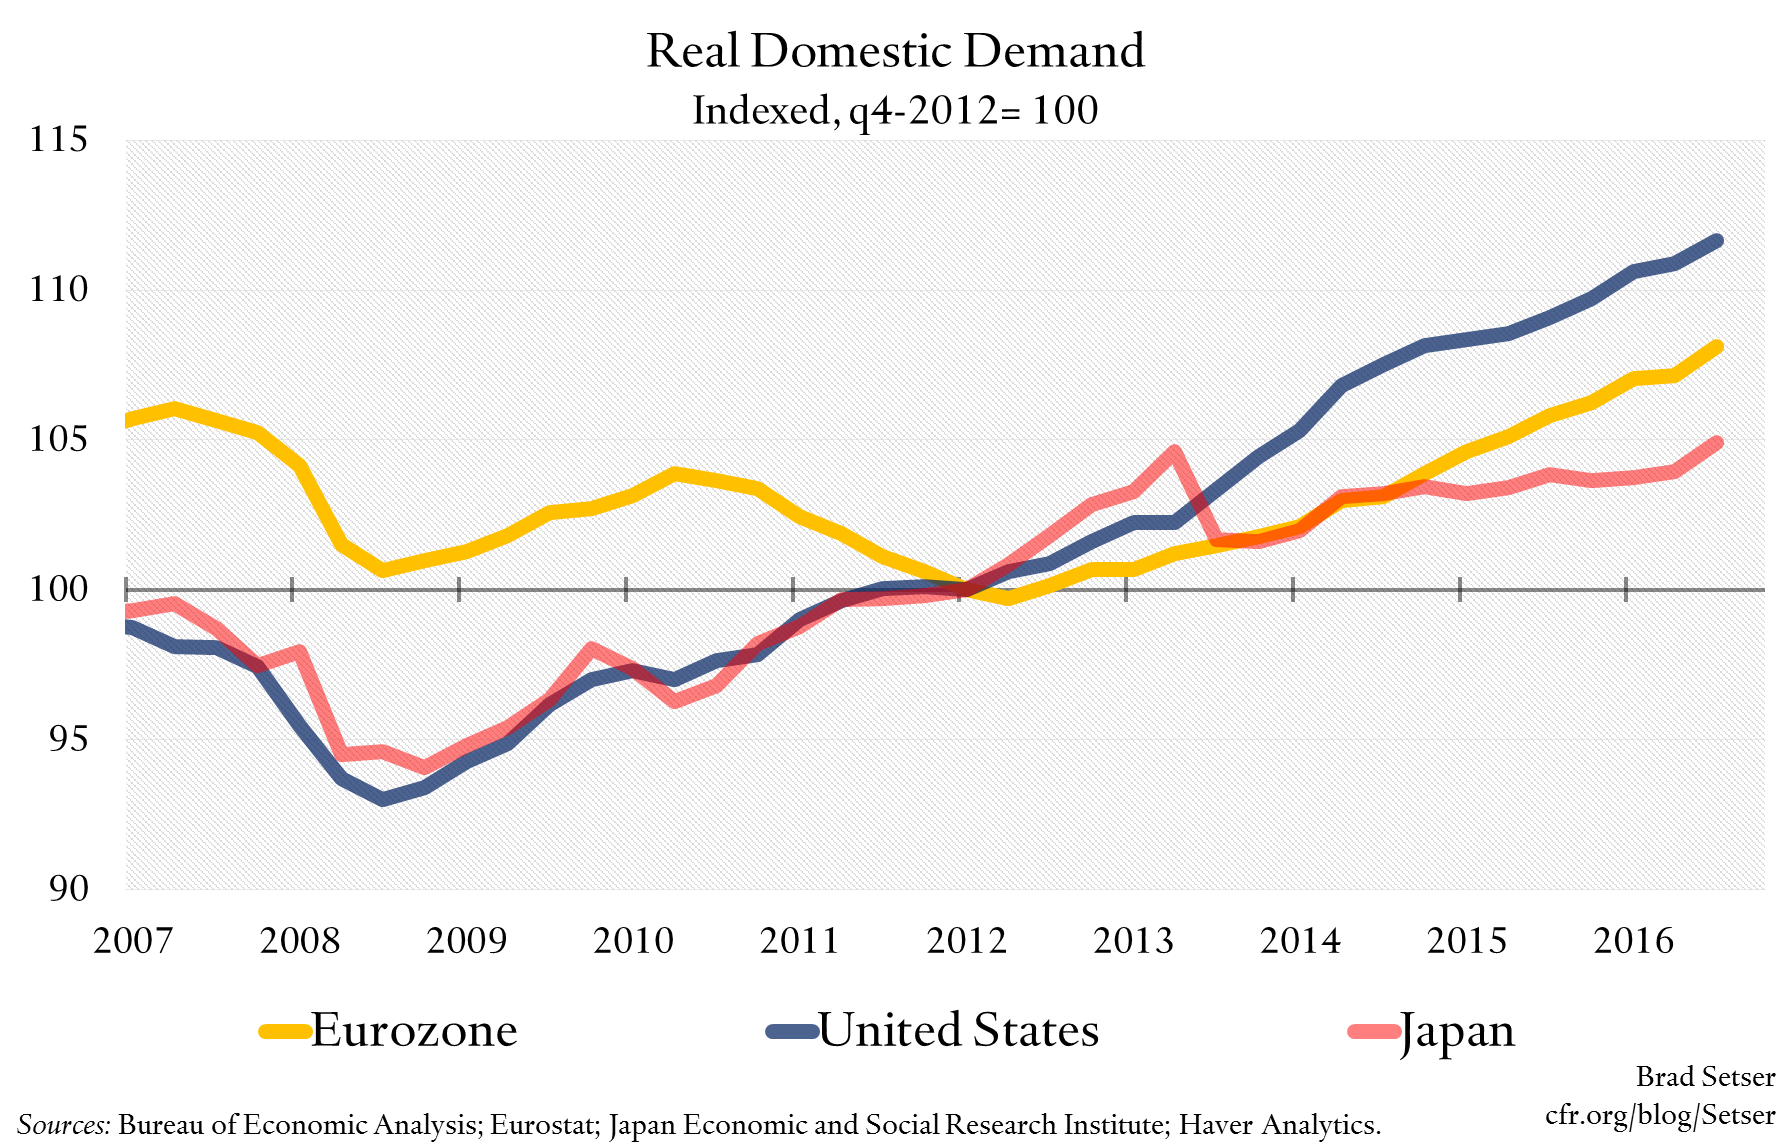 Abenomics and the Long Legacy of the Consumption Tax Hike